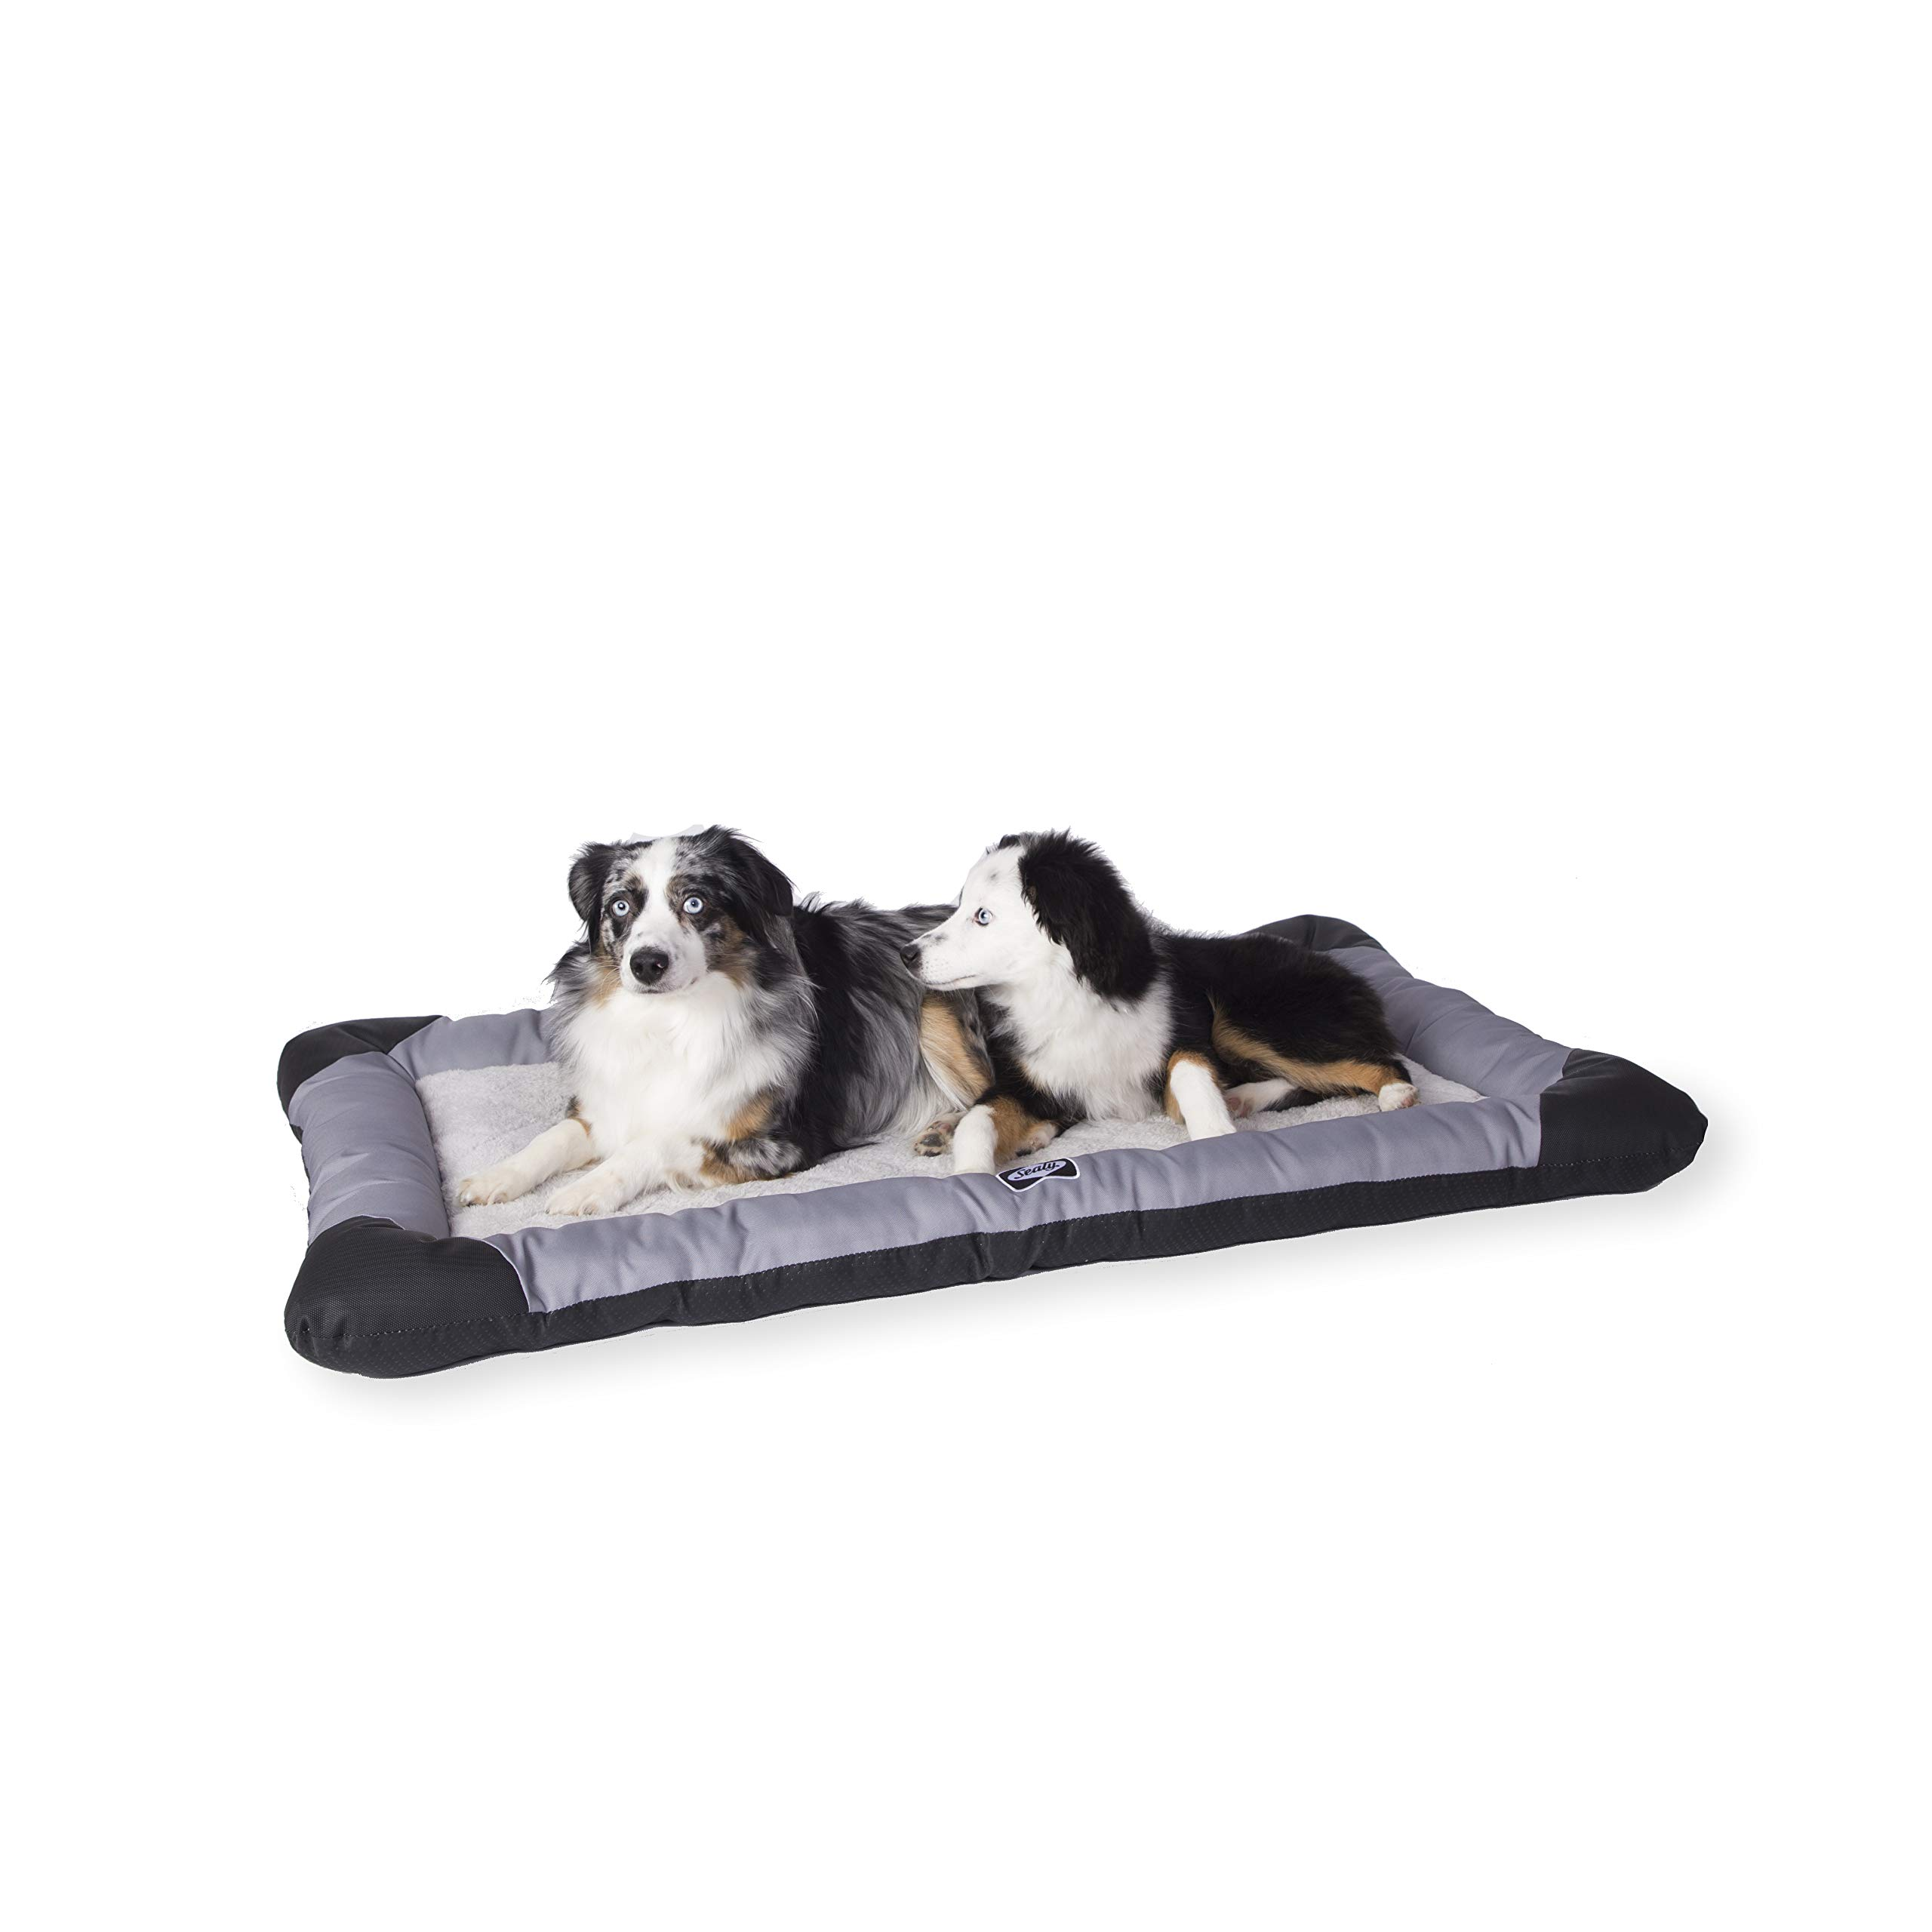 Sealy Quilted Memory Foam Heavy Duty Crate Pad Gray/Black, X-Large 30'' x 46'', X-Large (30'' x 46'') by Sealy Dog Bed